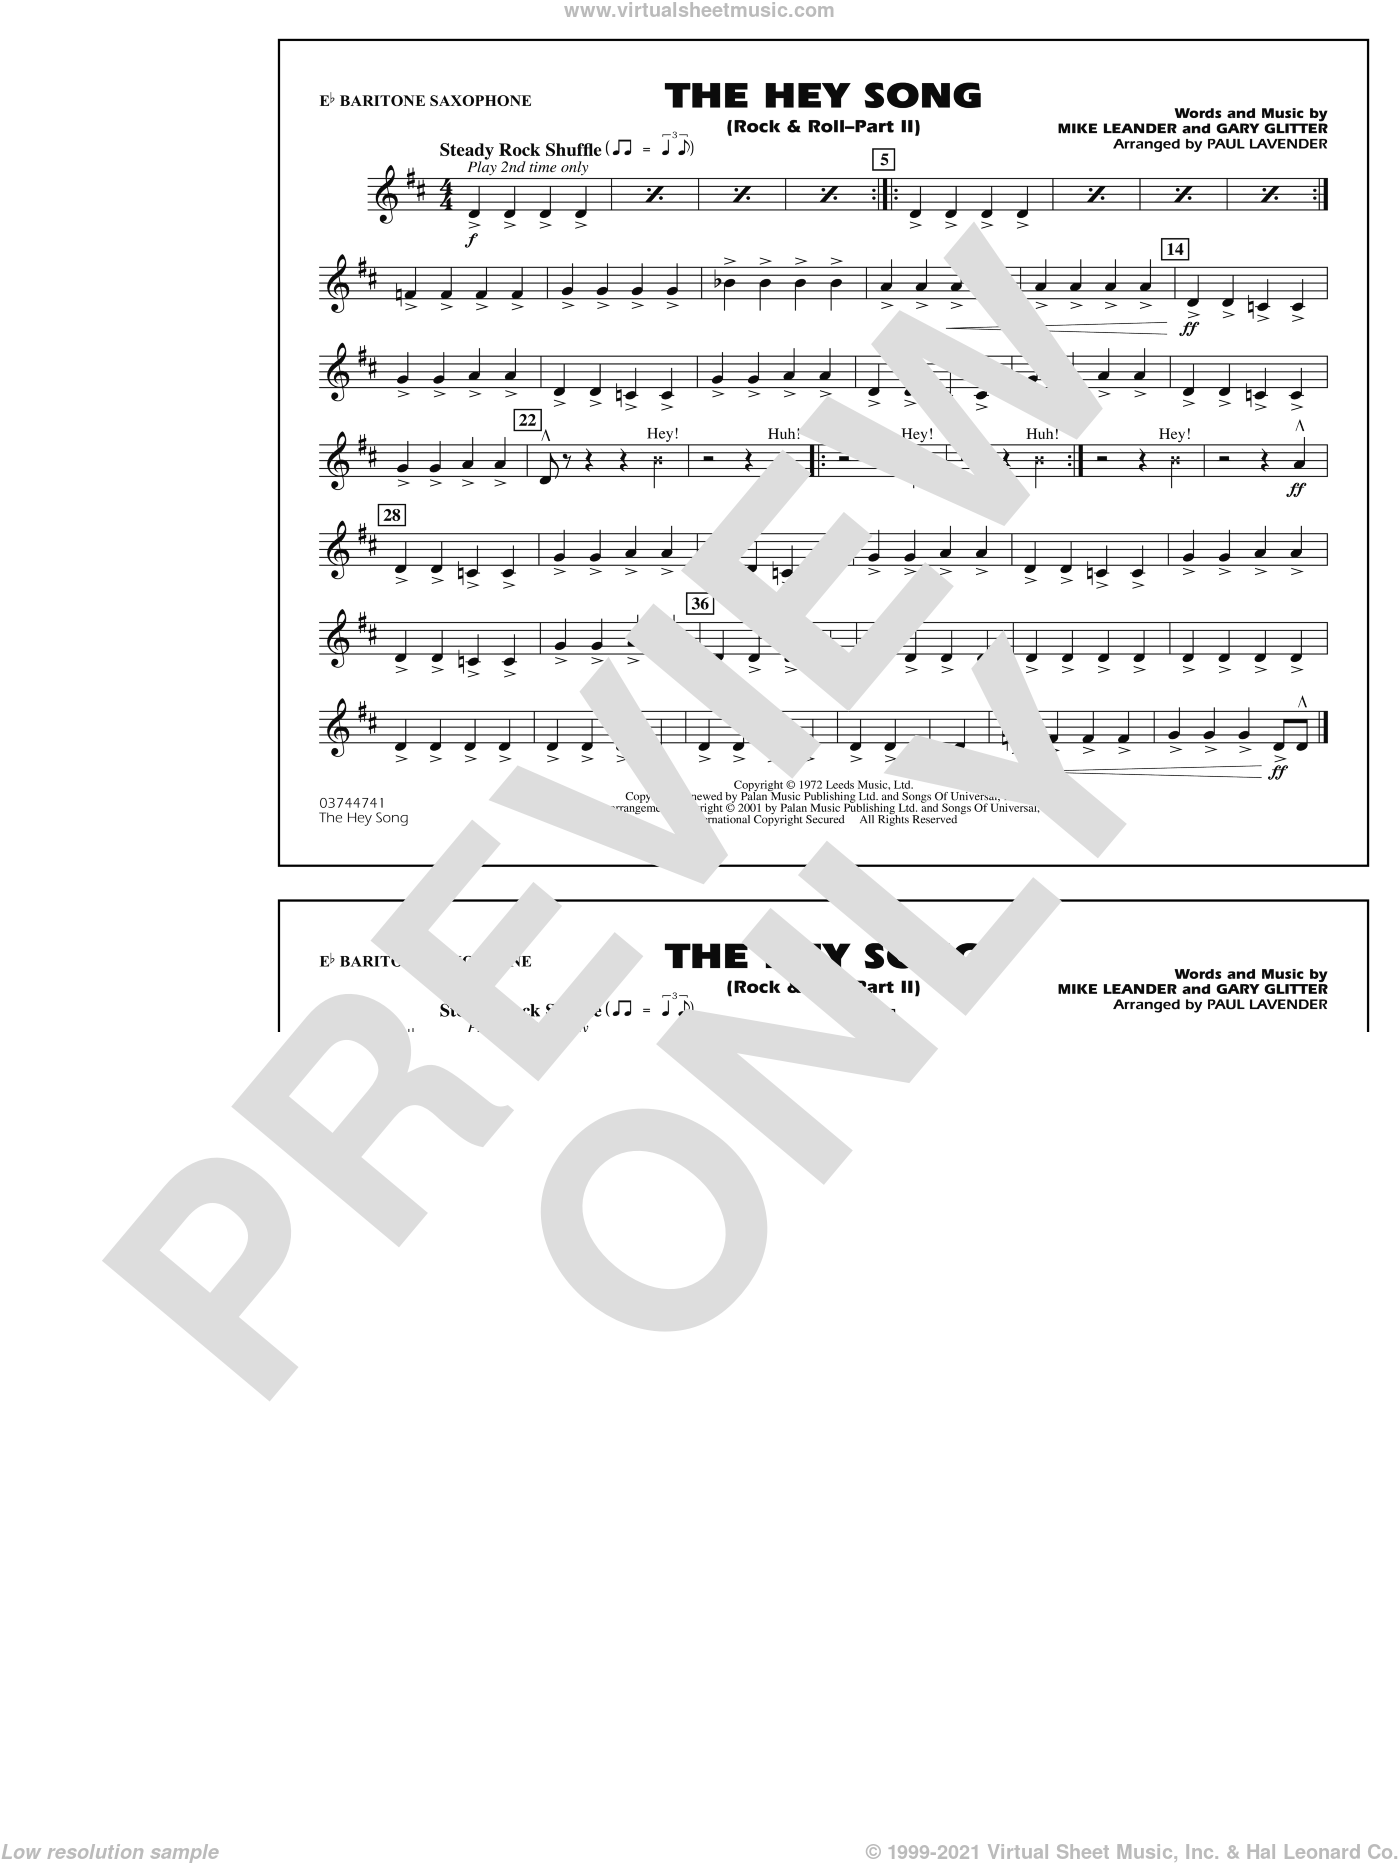 Rock and Roll, part ii (the hey song) sheet music for marching band (Eb baritone sax) by Paul Lavender, Mike Leander and Gary Glitter, intermediate skill level